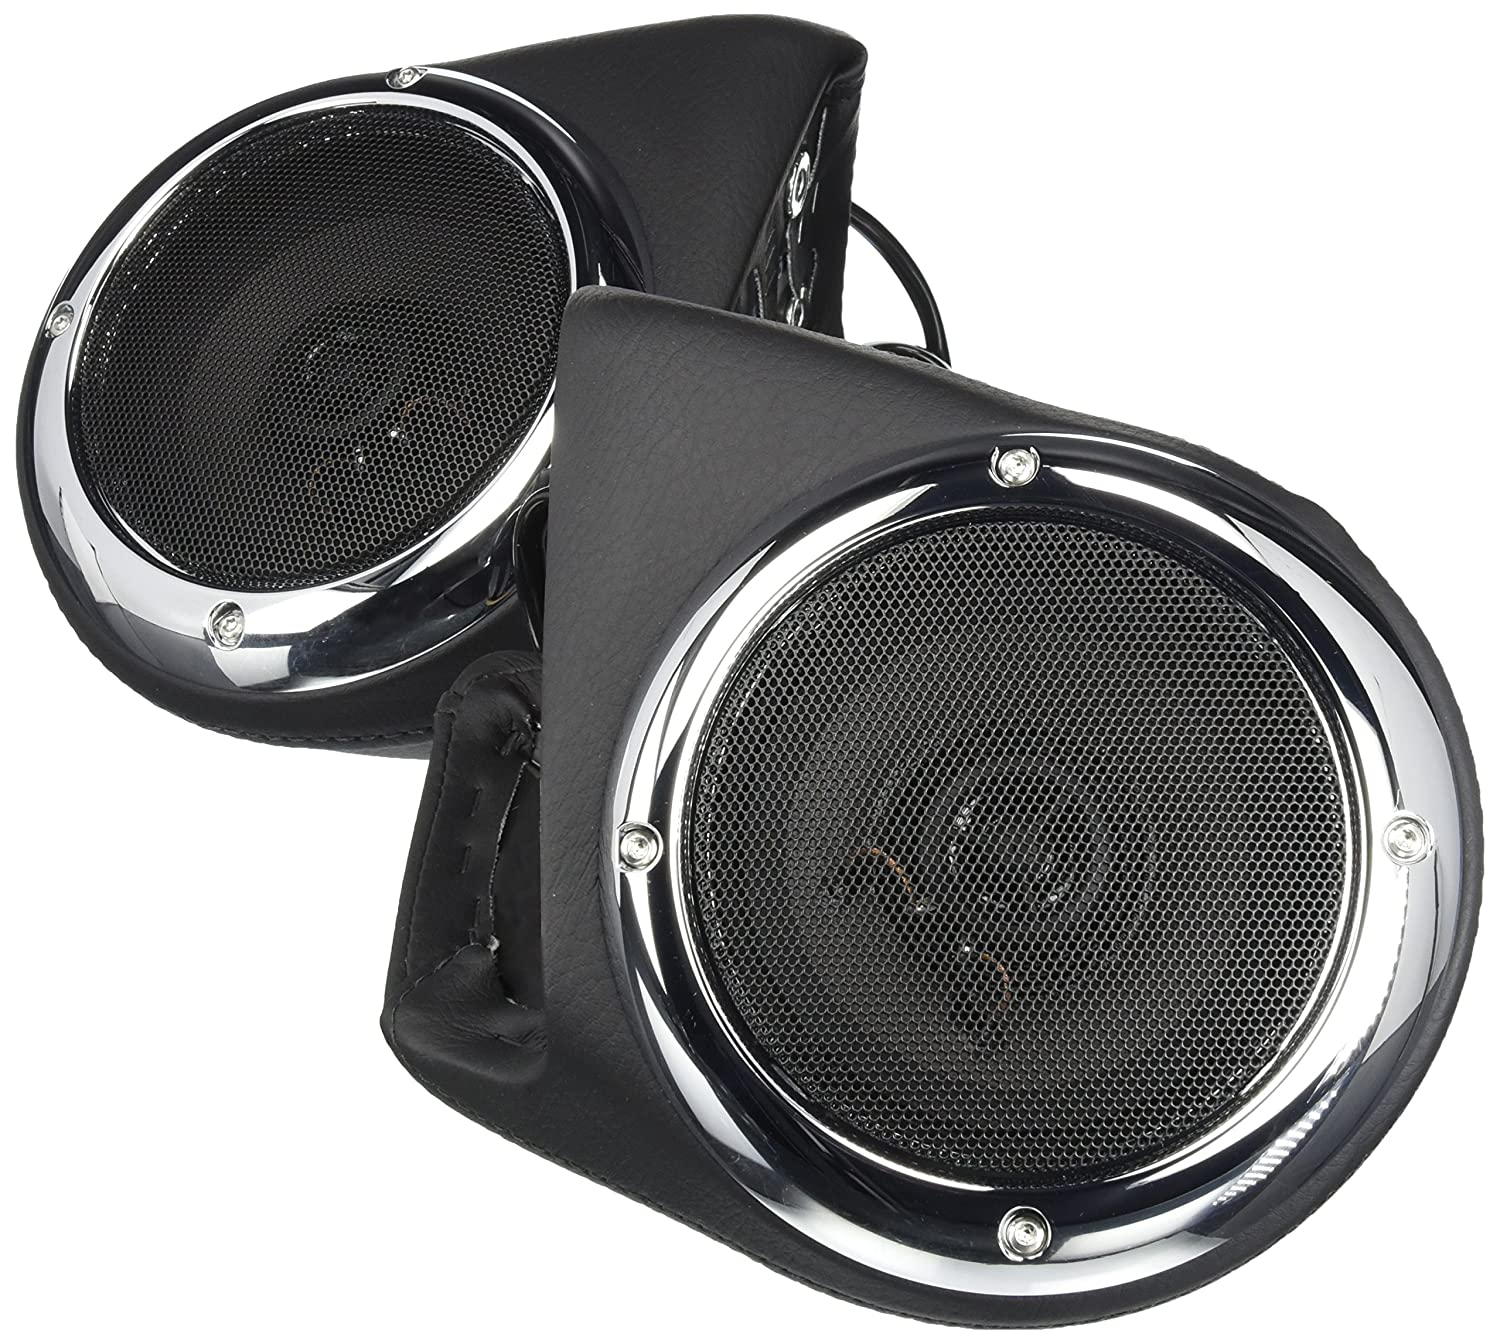 91dptqsDs6L._SL1500_ amazon com kawasaki k10400 039 rear speaker kit automotive  at crackthecode.co